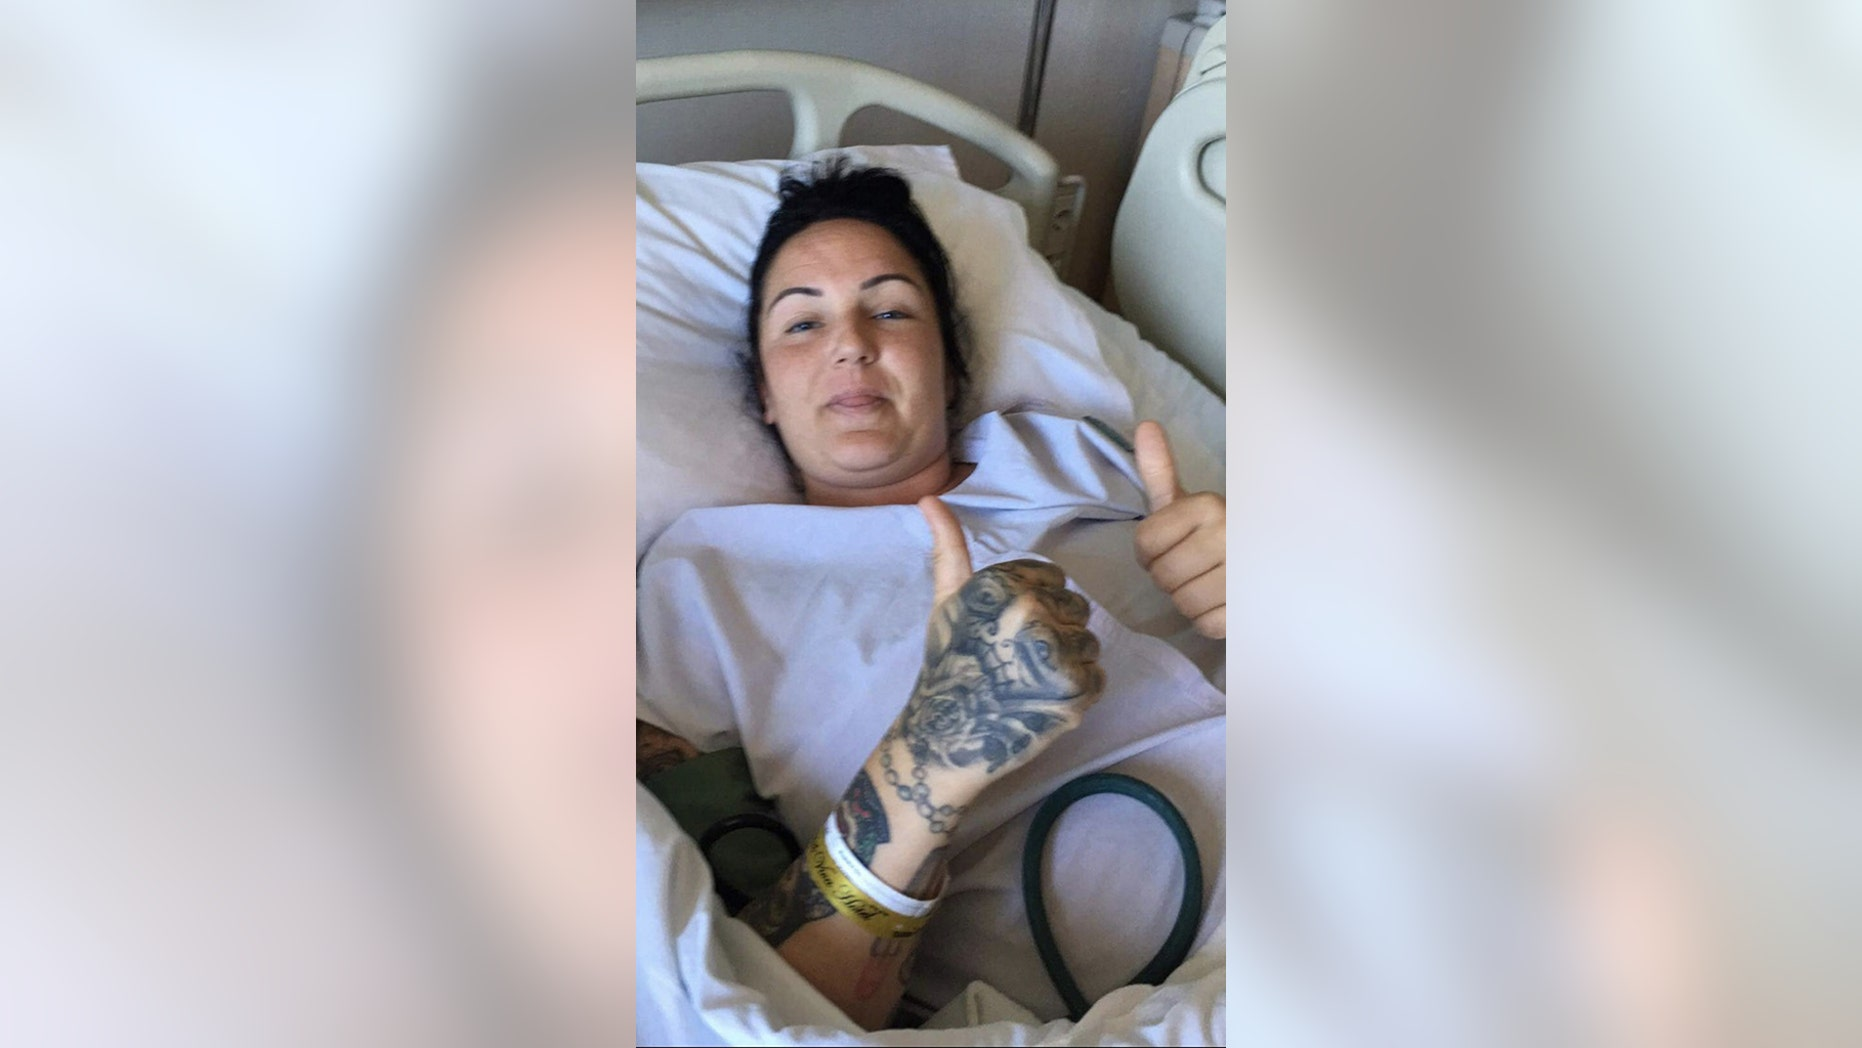 Donnelly reportedly suffered an seven-inch tear from the blast that required hundreds of stitches.